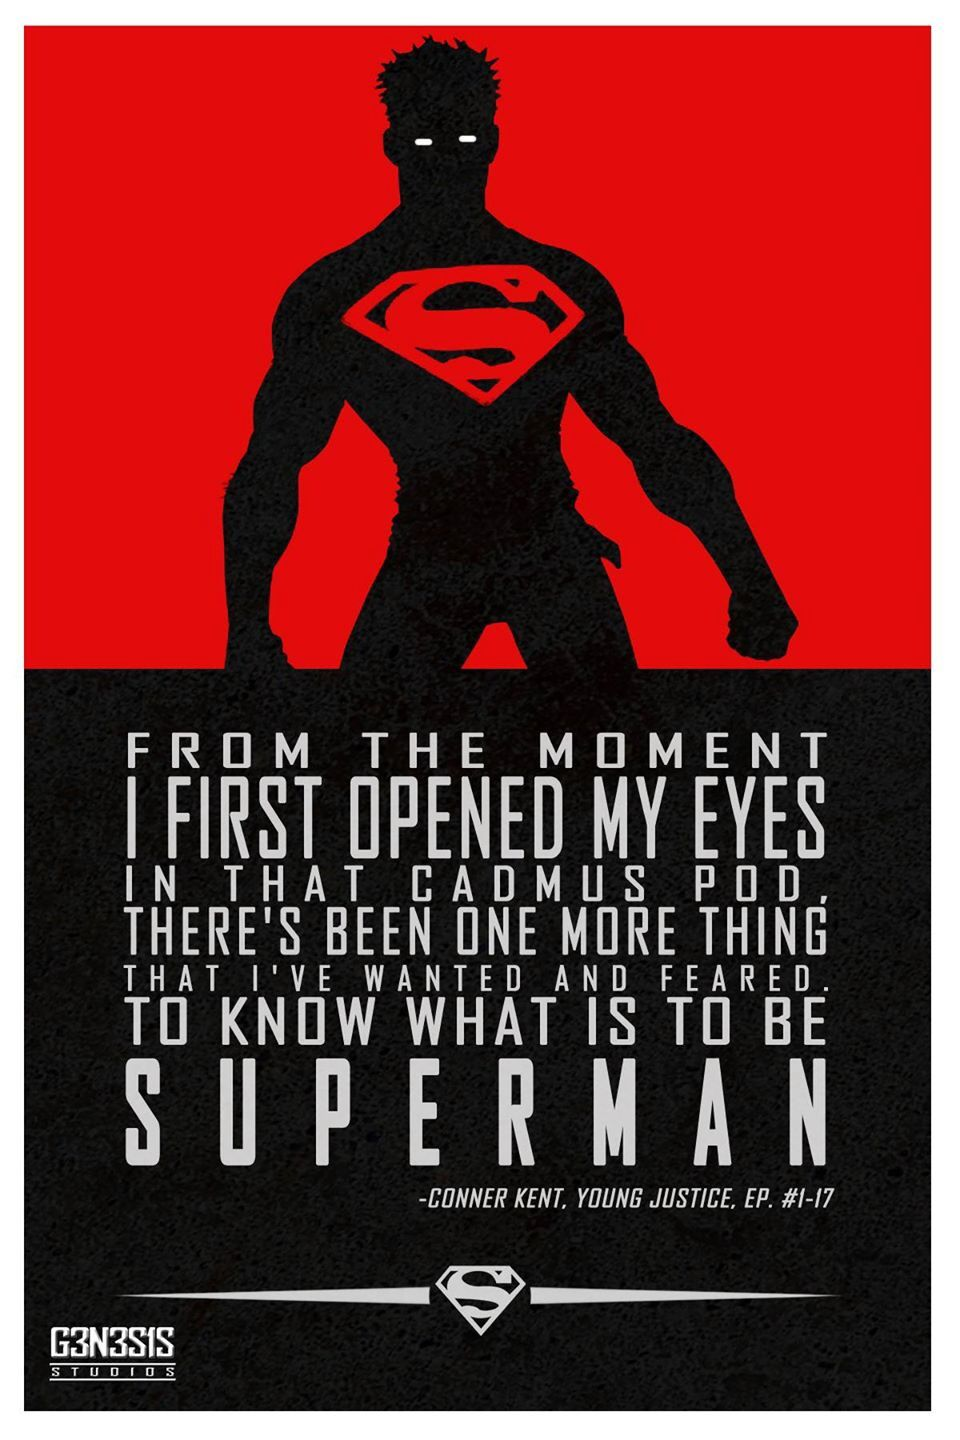 Discover and share Young Justice Quotes And Sayings Explore our collection of motivational and famous quotes by authors you know and love